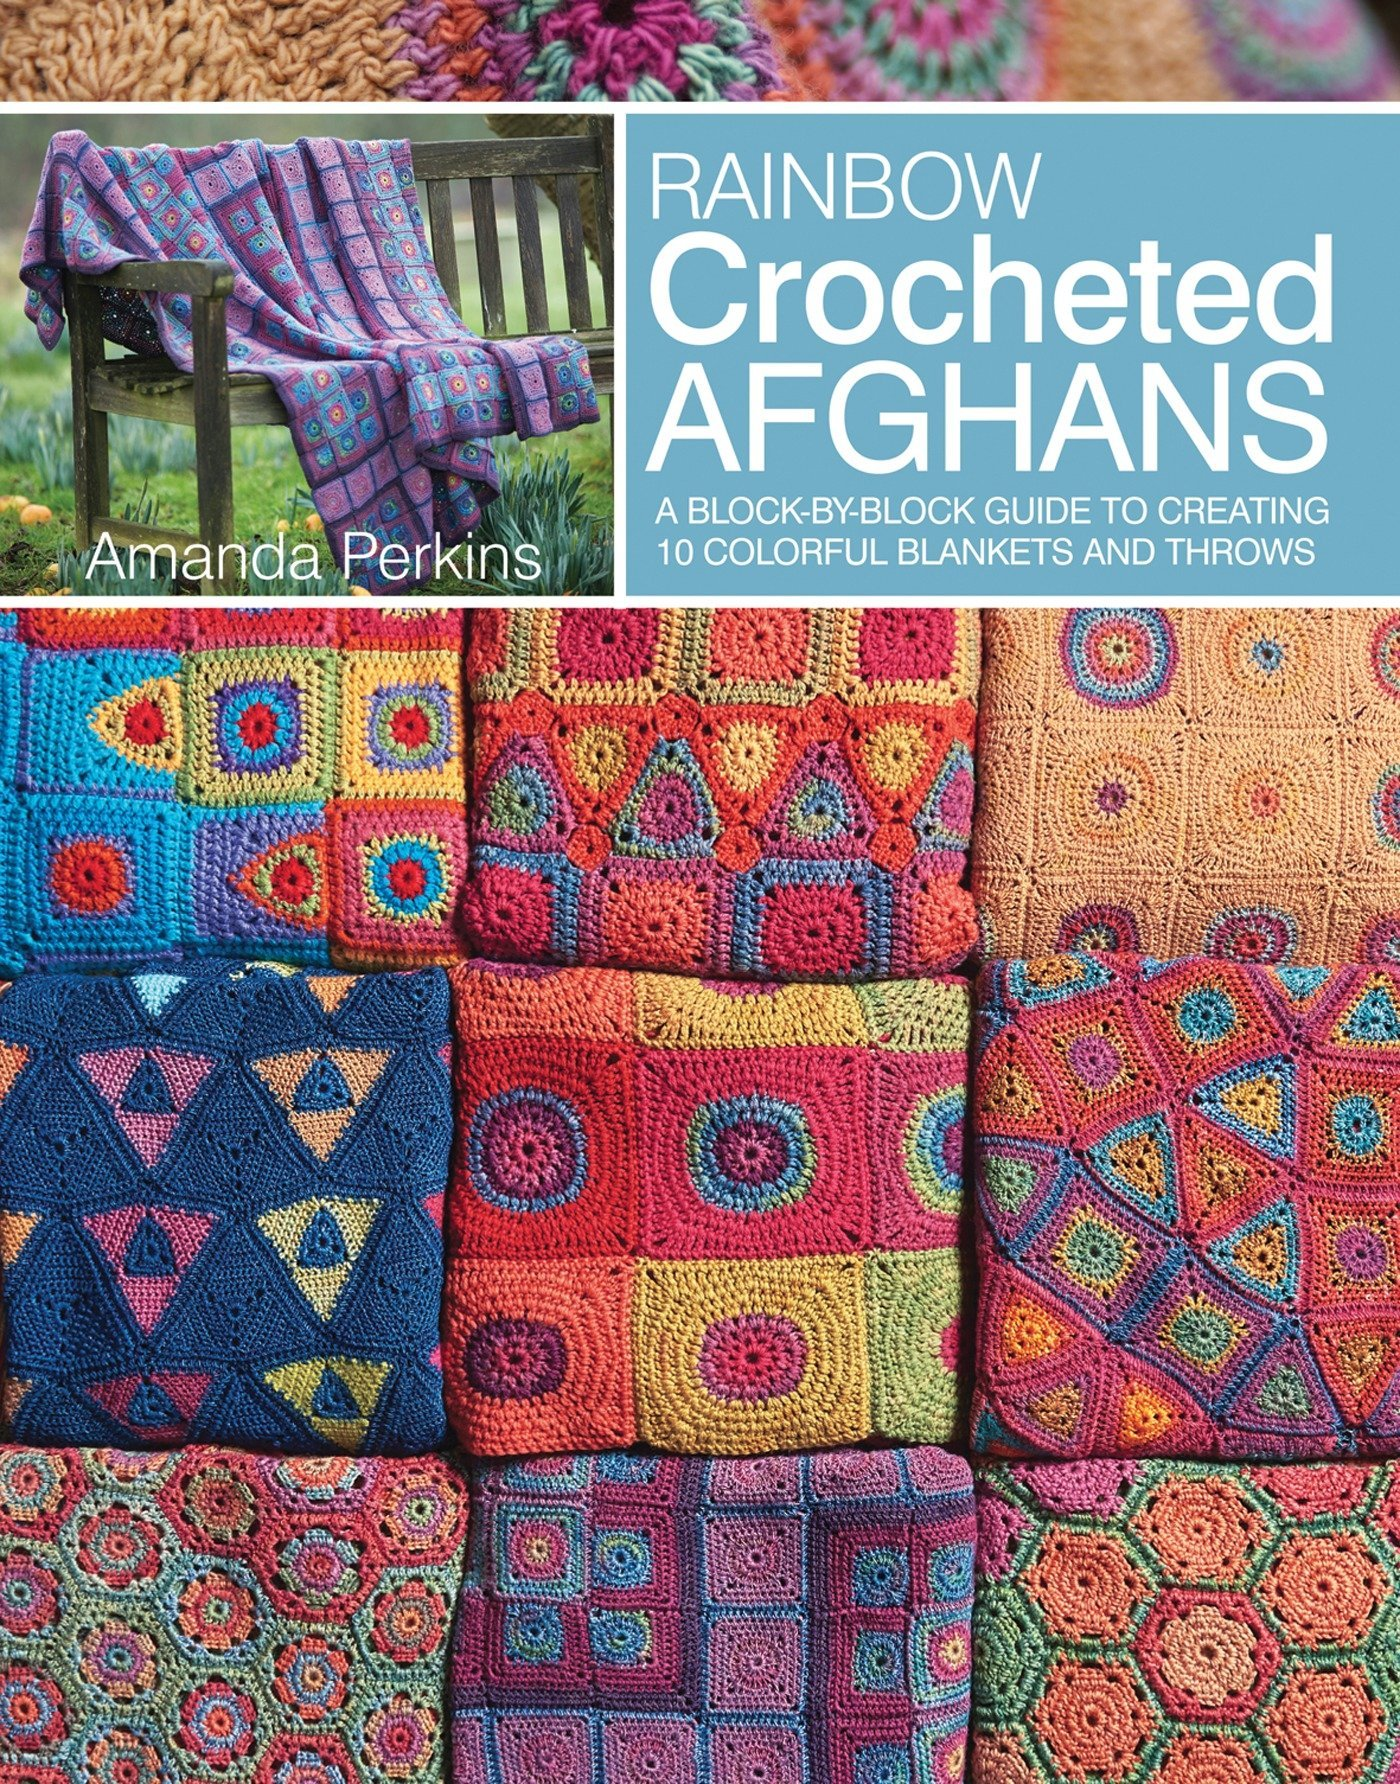 Rainbow Crocheted Afghans A Block By Block Guide To Creating 10